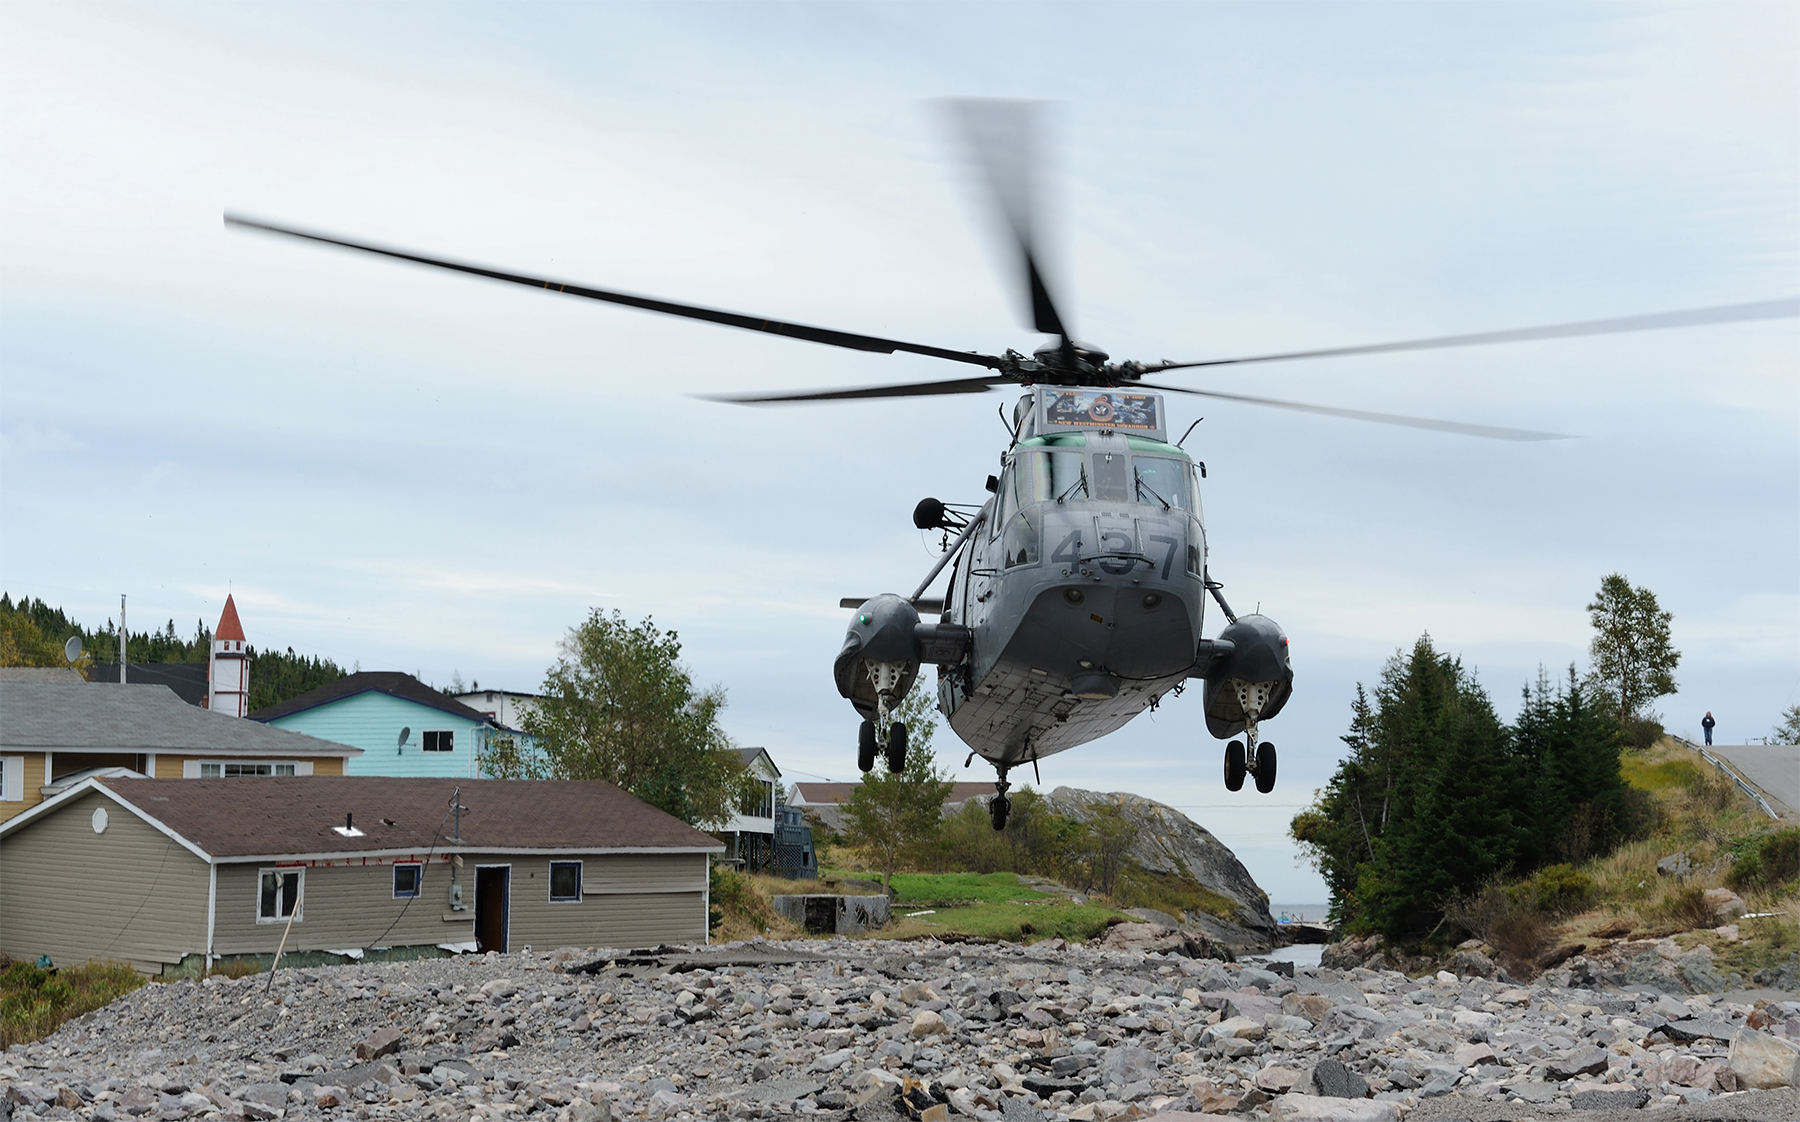 A CH-124 Sea King from 423 Maritime Helicopter Squadron, Shearwater, Nova Scotia, takes off from a river bed in the small community of Trouty, Newfoundland and Labrador. The squadron was supporting relief efforts in the province following Hurricane Igor in September 2010. PHOTO: Master Corporal Angela Abbey, IS2010-1015-02